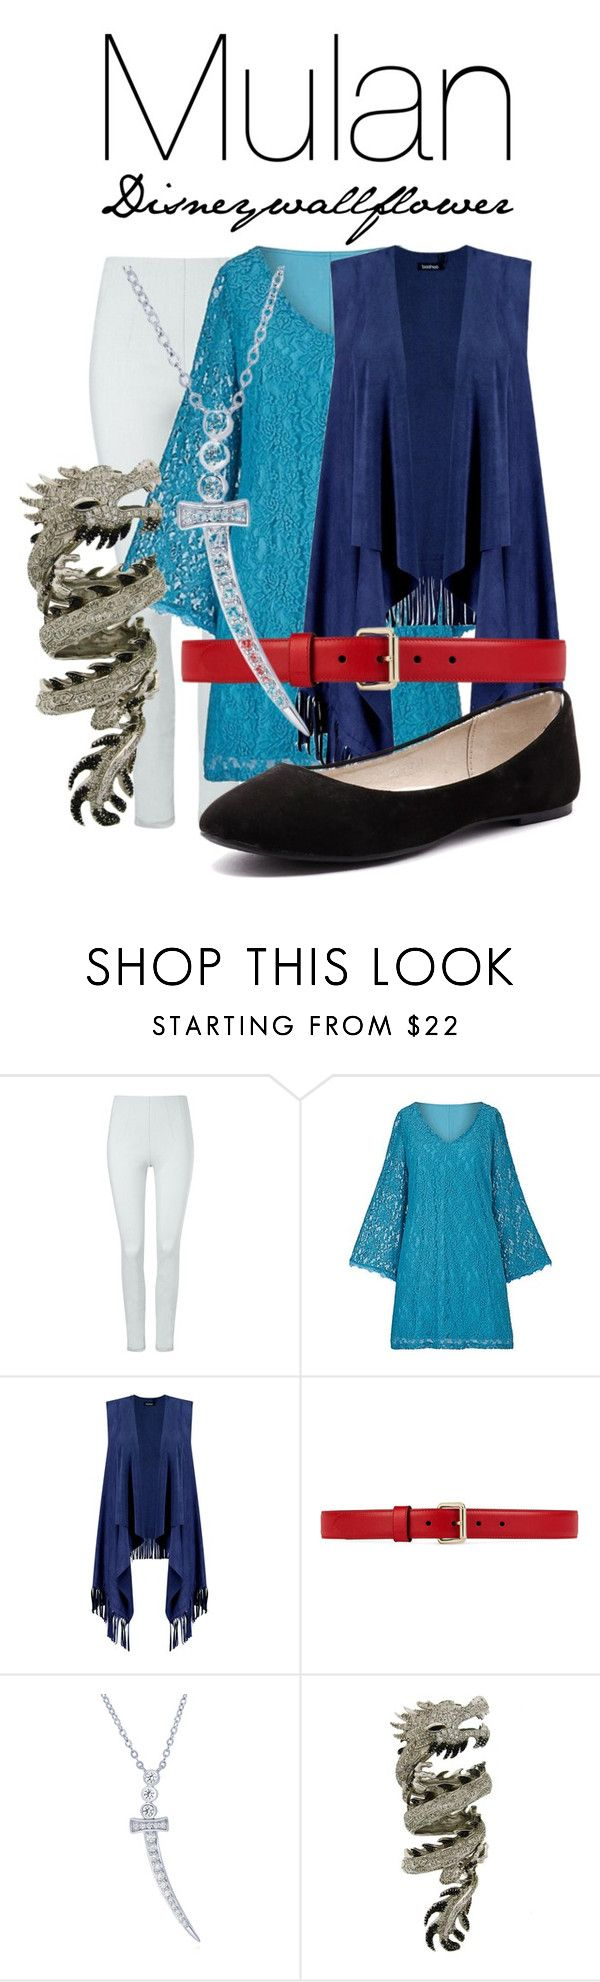 """""""Mulan"""" by disneywallflower ❤ liked on Polyvore featuring Phase Eight, Boohoo, Gucci, BERRICLE, Elise Dray and Verali"""